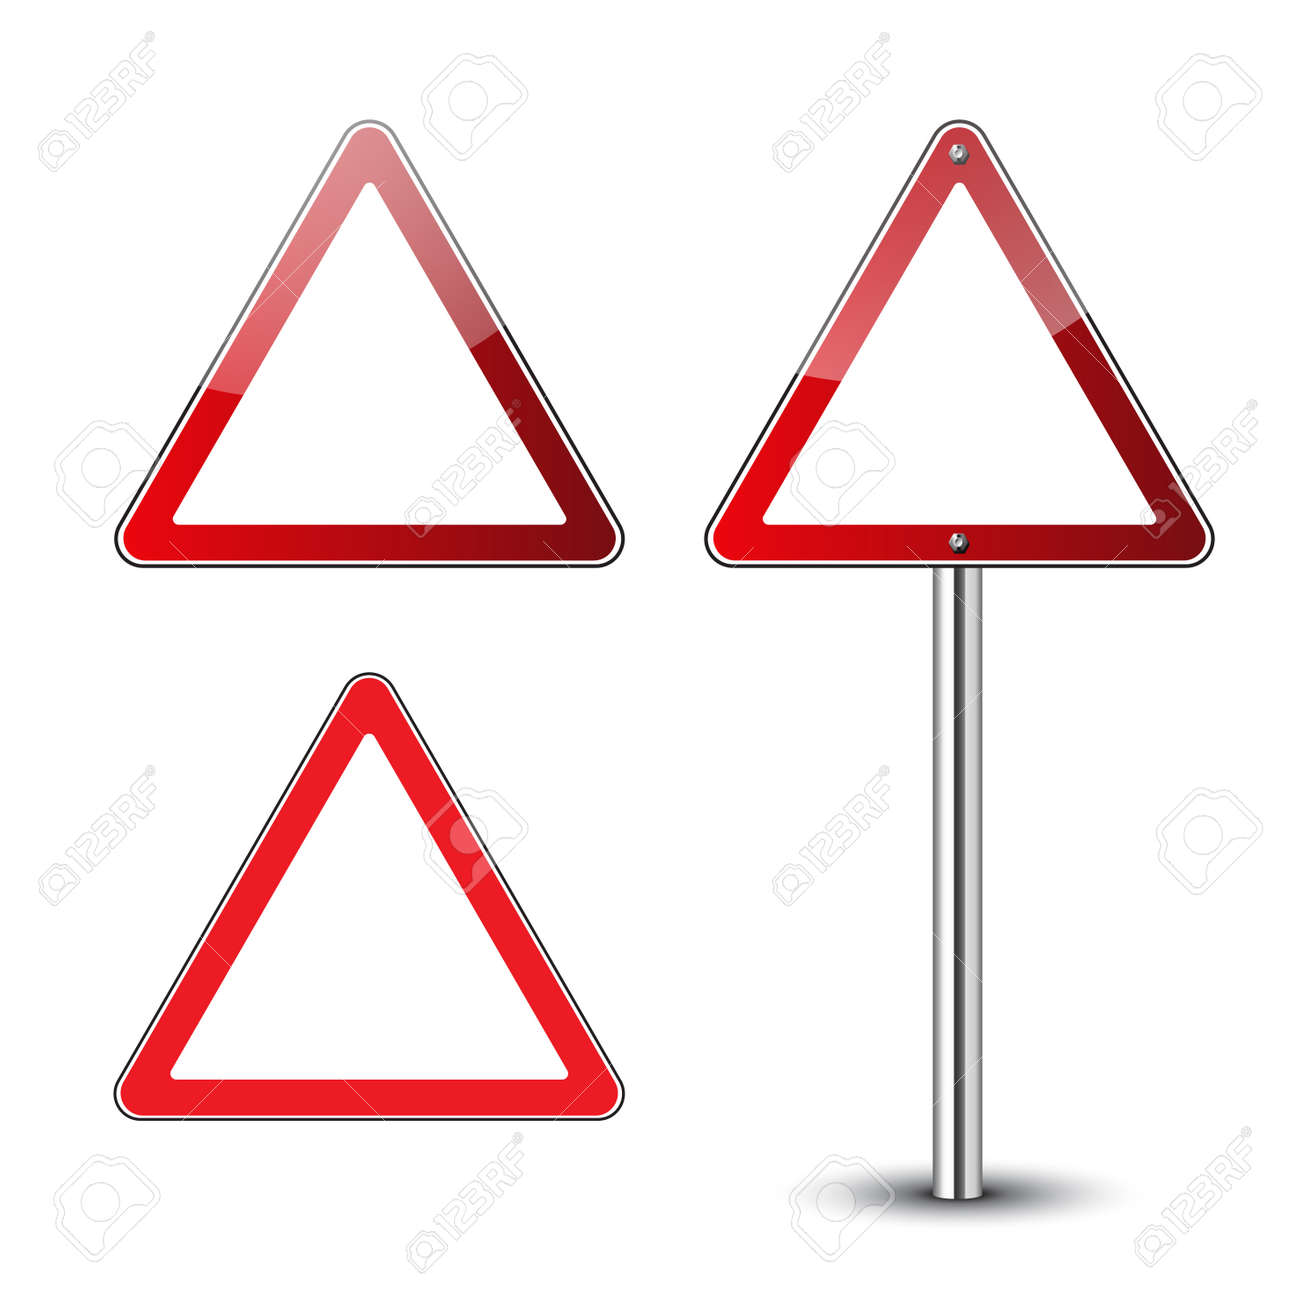 Triangle Warning Signs Blank Danger Red Triangular Road Signs